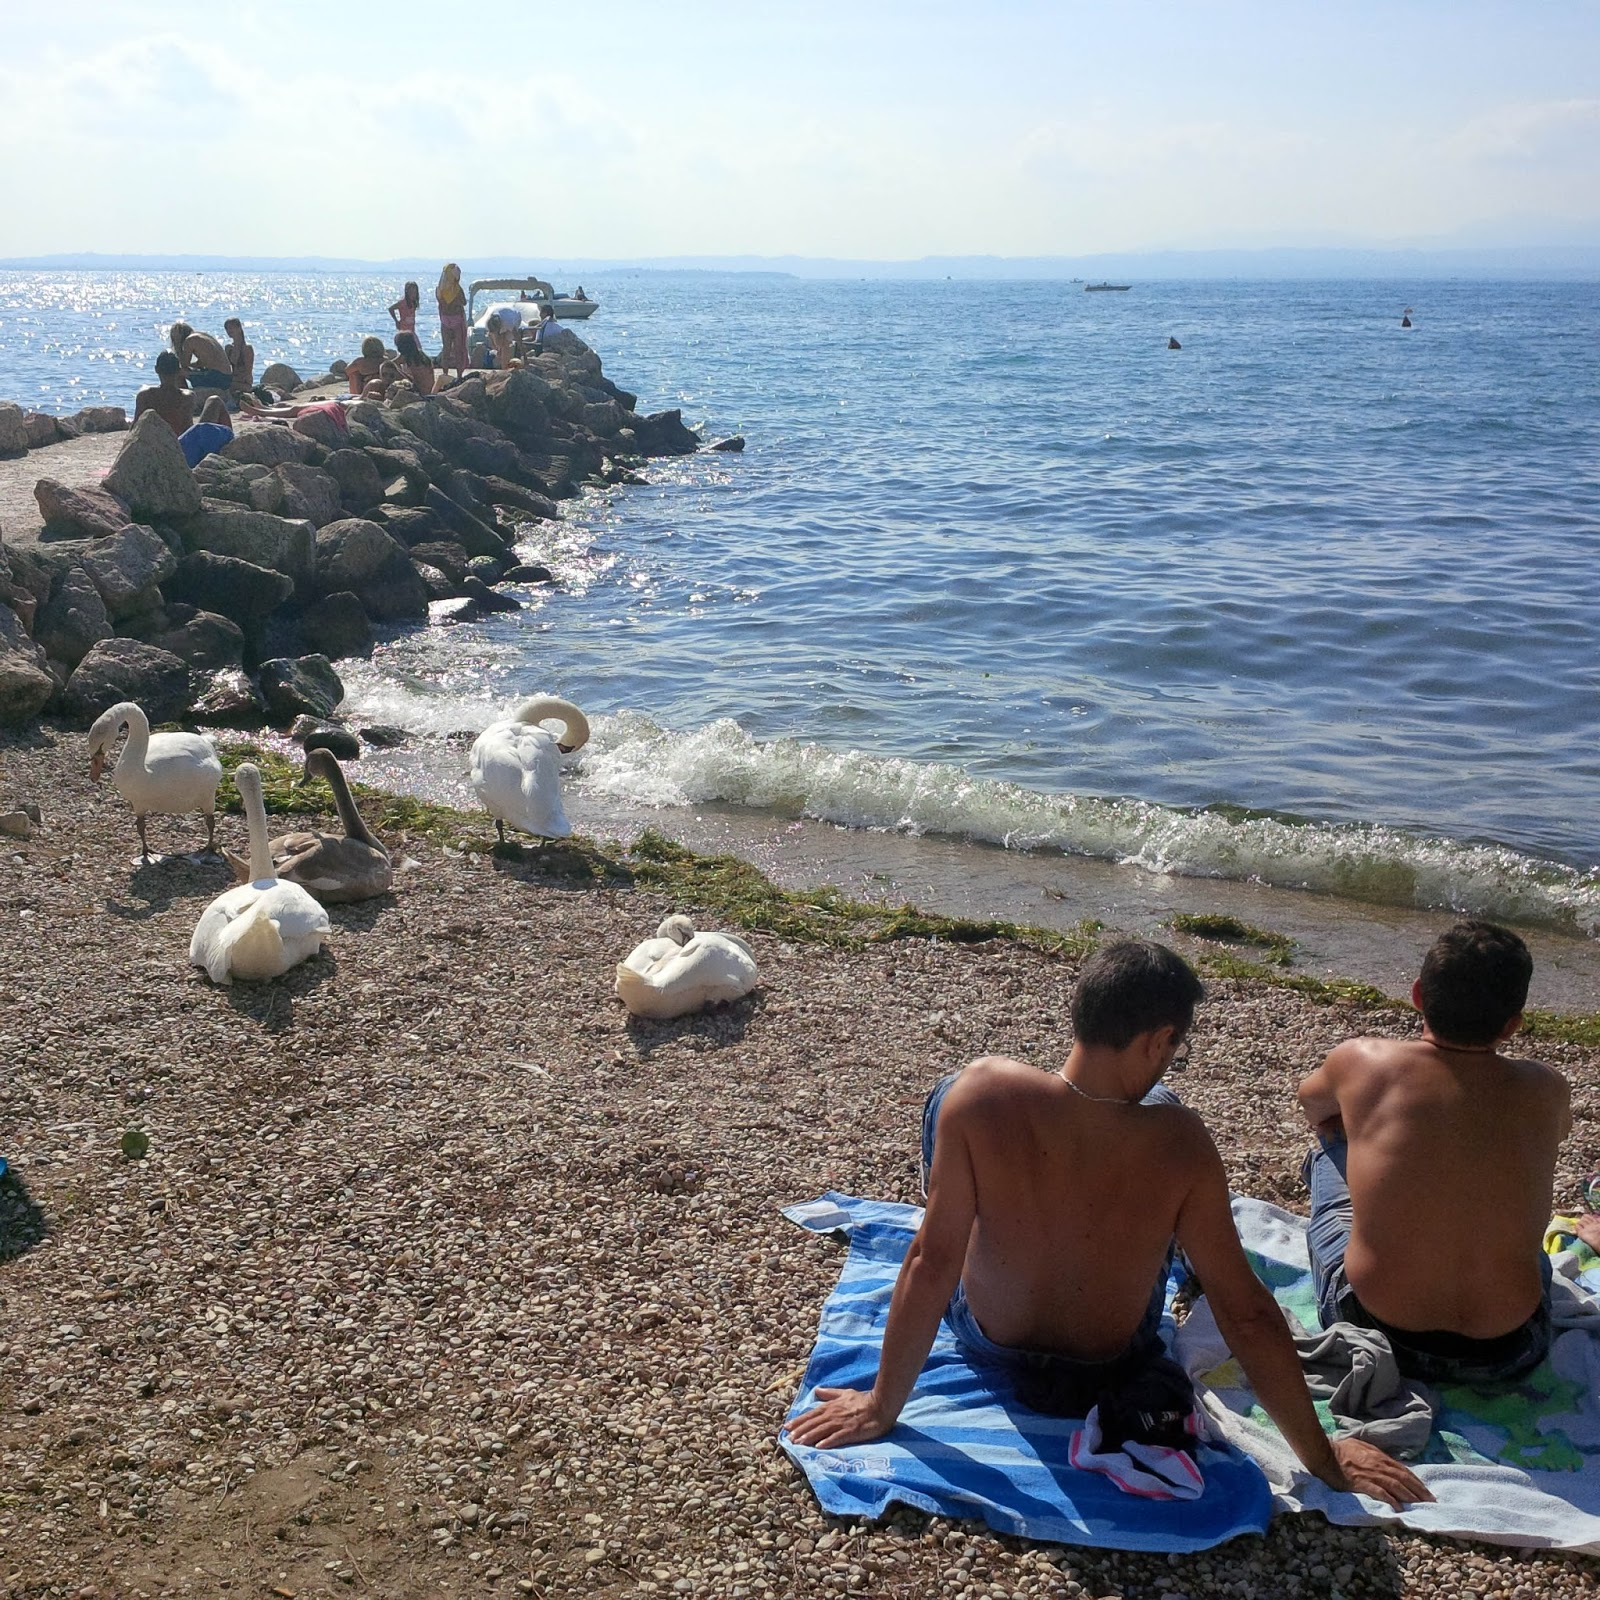 Men and swans sunbathe in Lazise, Veneto, Italy - www.rossiwrites.com